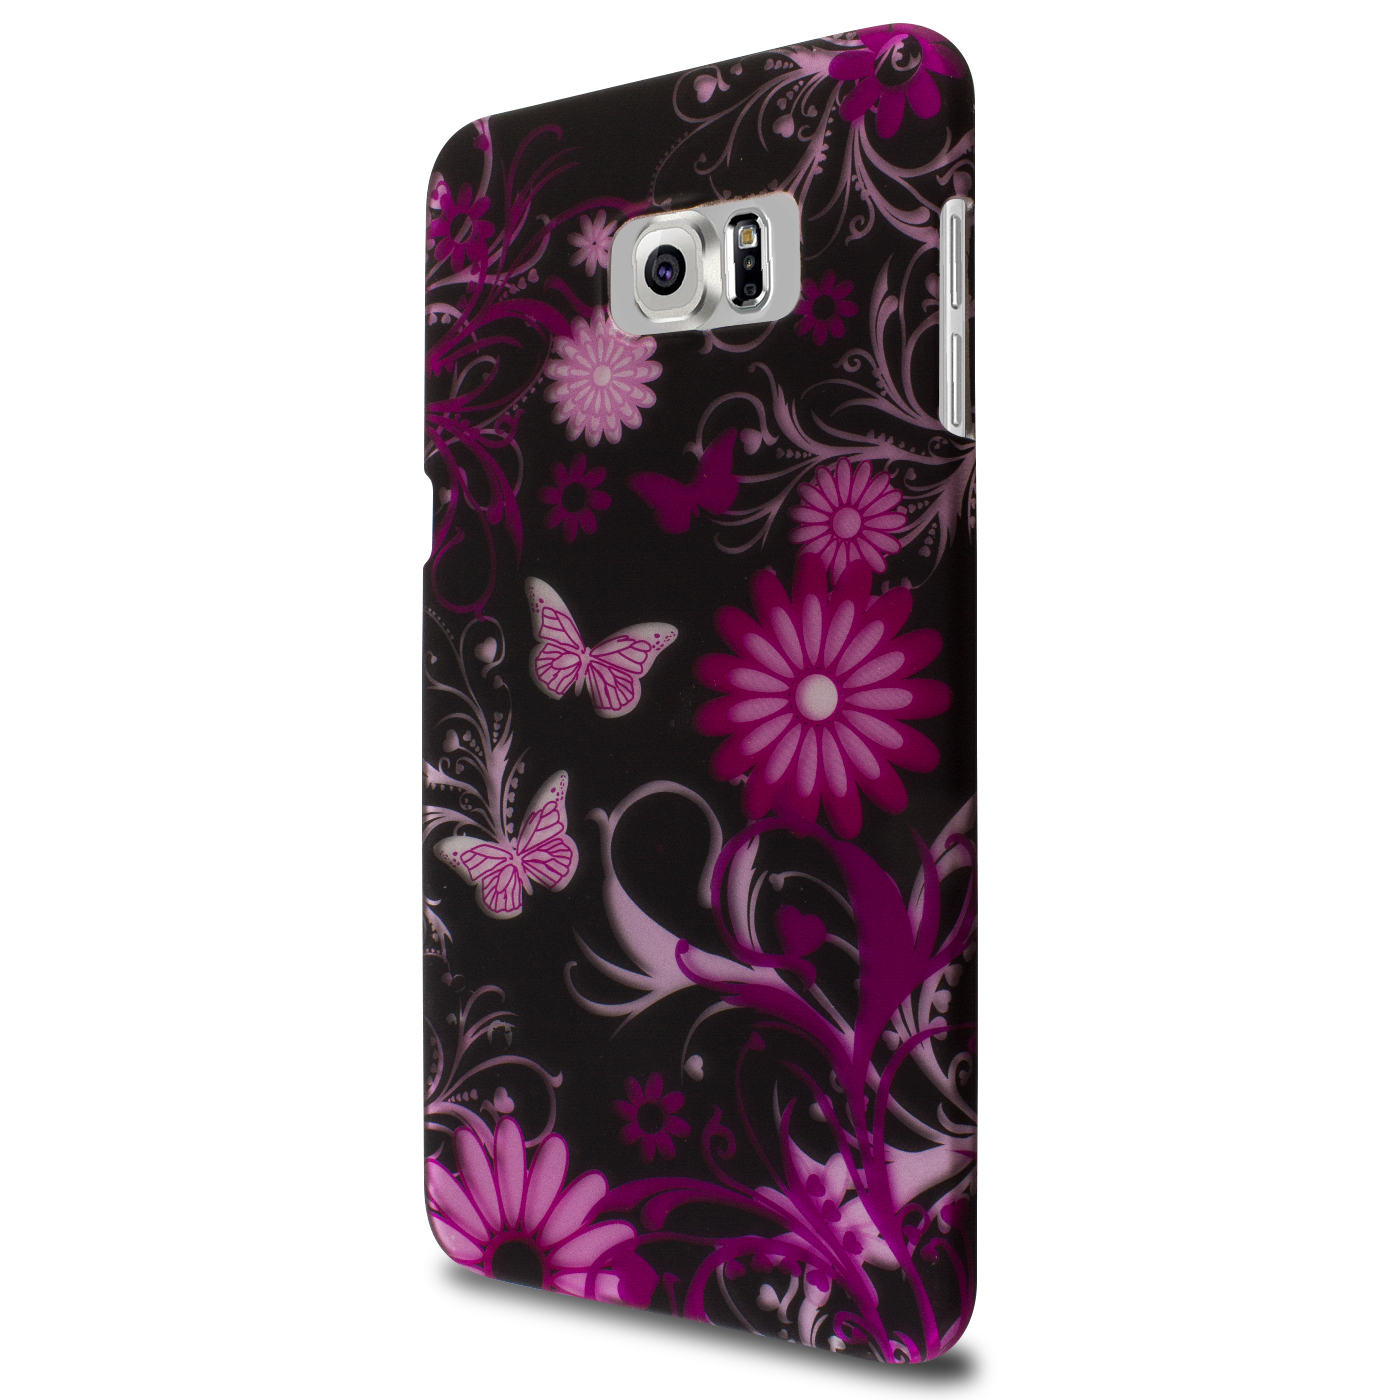 watch d4602 aa959 Details about Hard Case for Samsung Galaxy S6 Edge+ Plus Pink Butterfly  Design Slim Back Cover